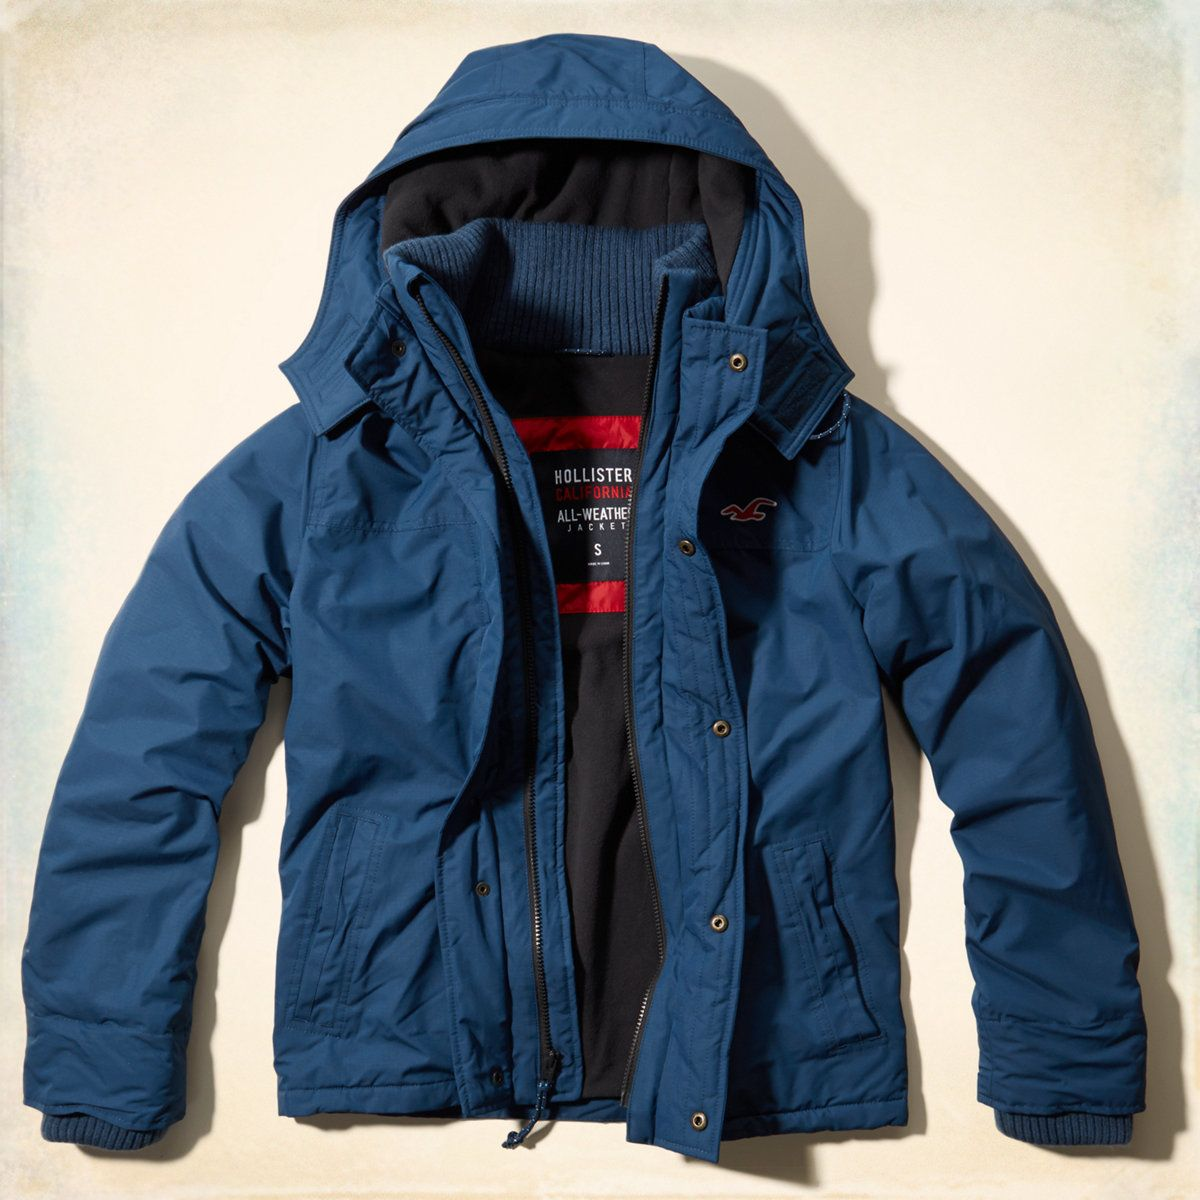 The Hollister All Weather Ja From Hollisterco Com On Wanelo All Weather Jackets Jackets Outerwear Jackets [ 1200 x 1200 Pixel ]